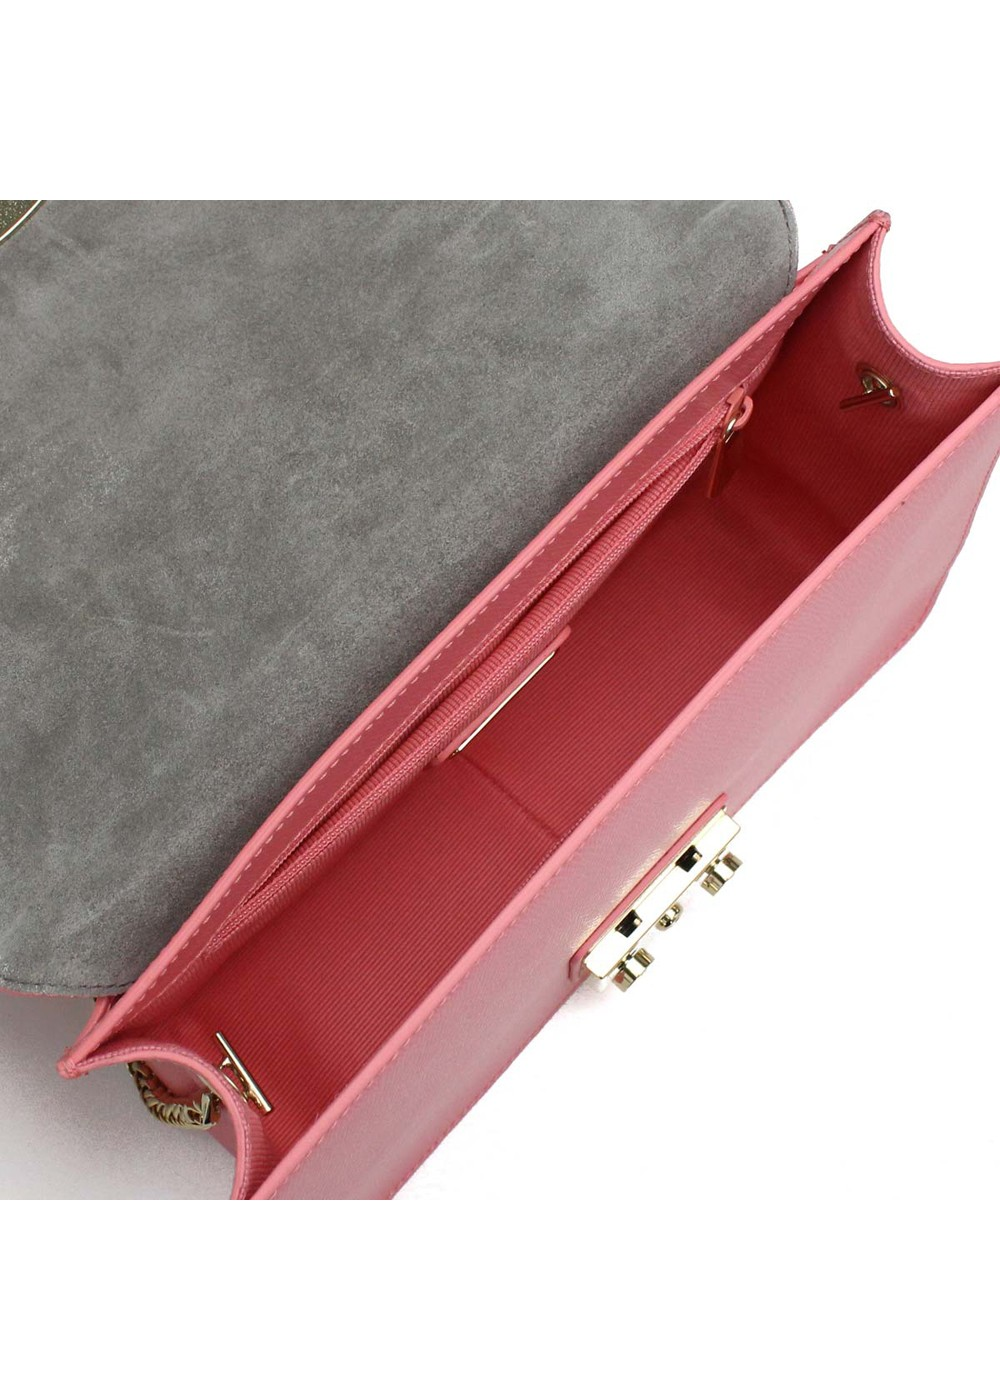 【最大47%OFF】BHV7 920375 ARE QRT|ROSA QUARZO|ショルダーバッグ|FURLA(B)